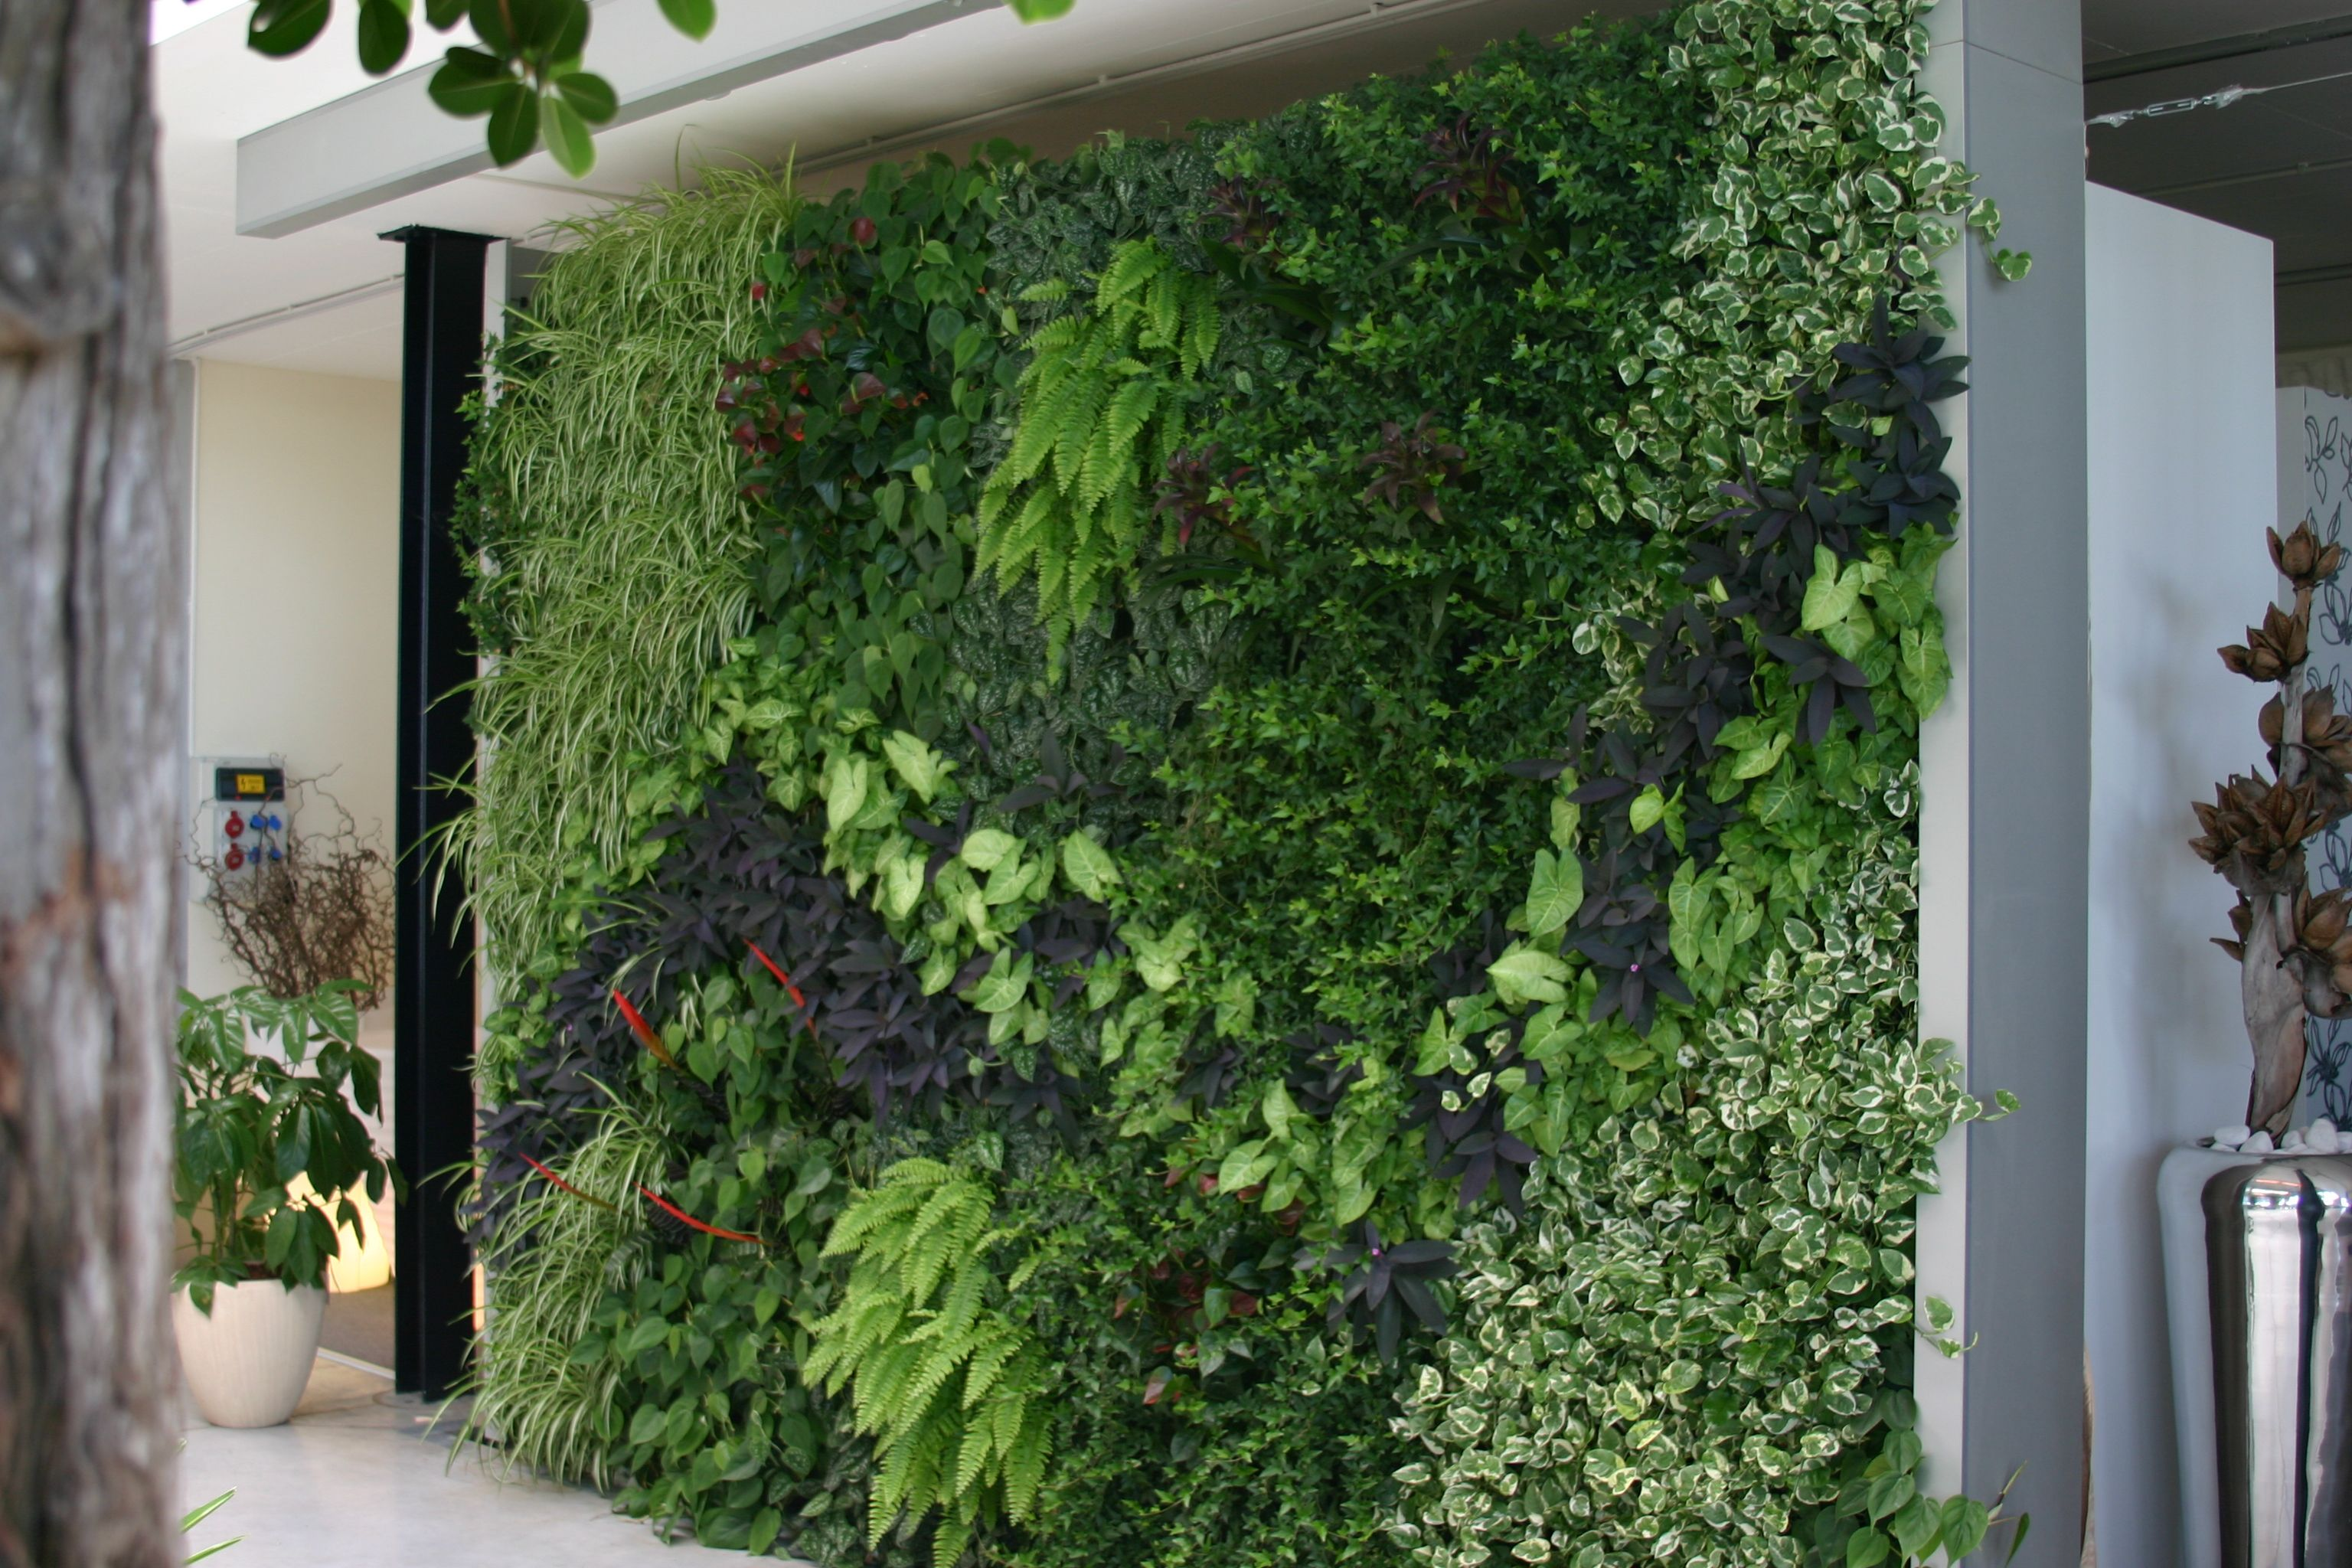 Green air can create living walls in auckland for for Living walls vertical gardens